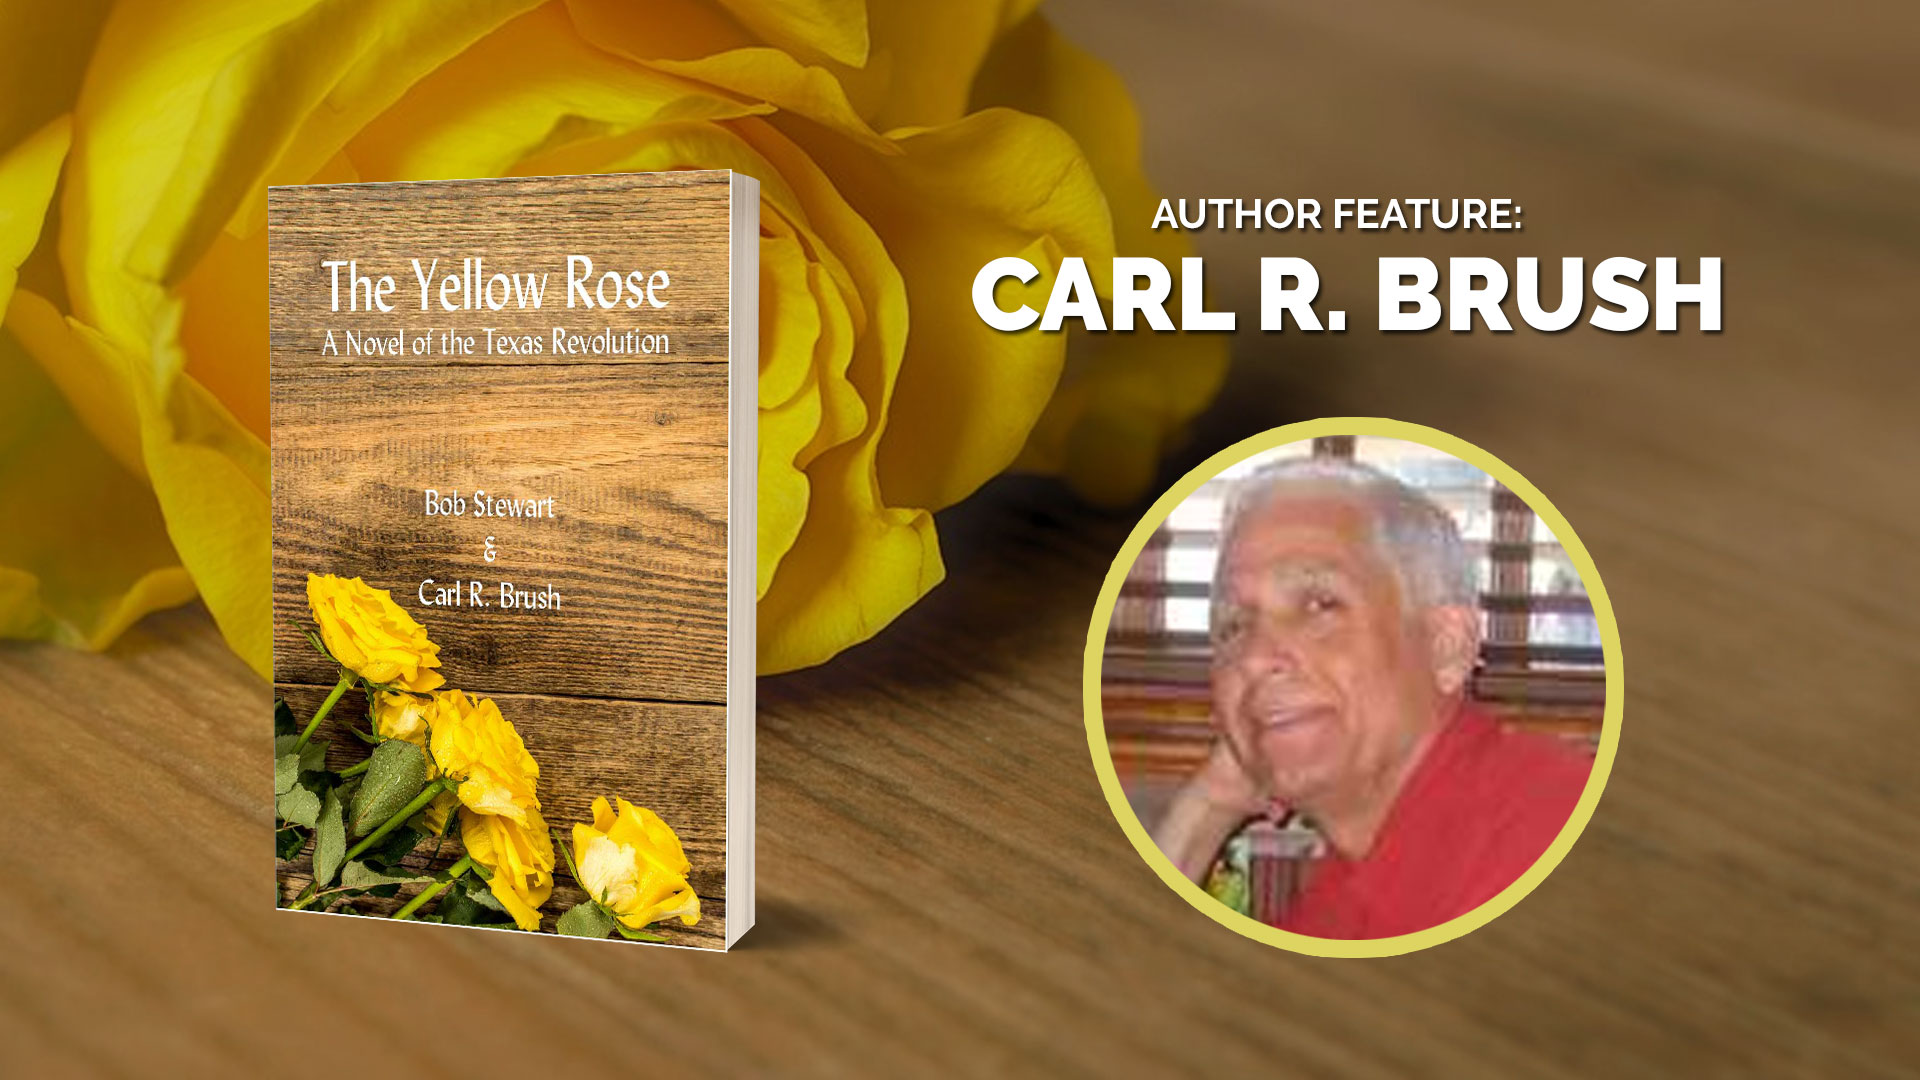 Author-Feature-Carl-R.-Brush banner